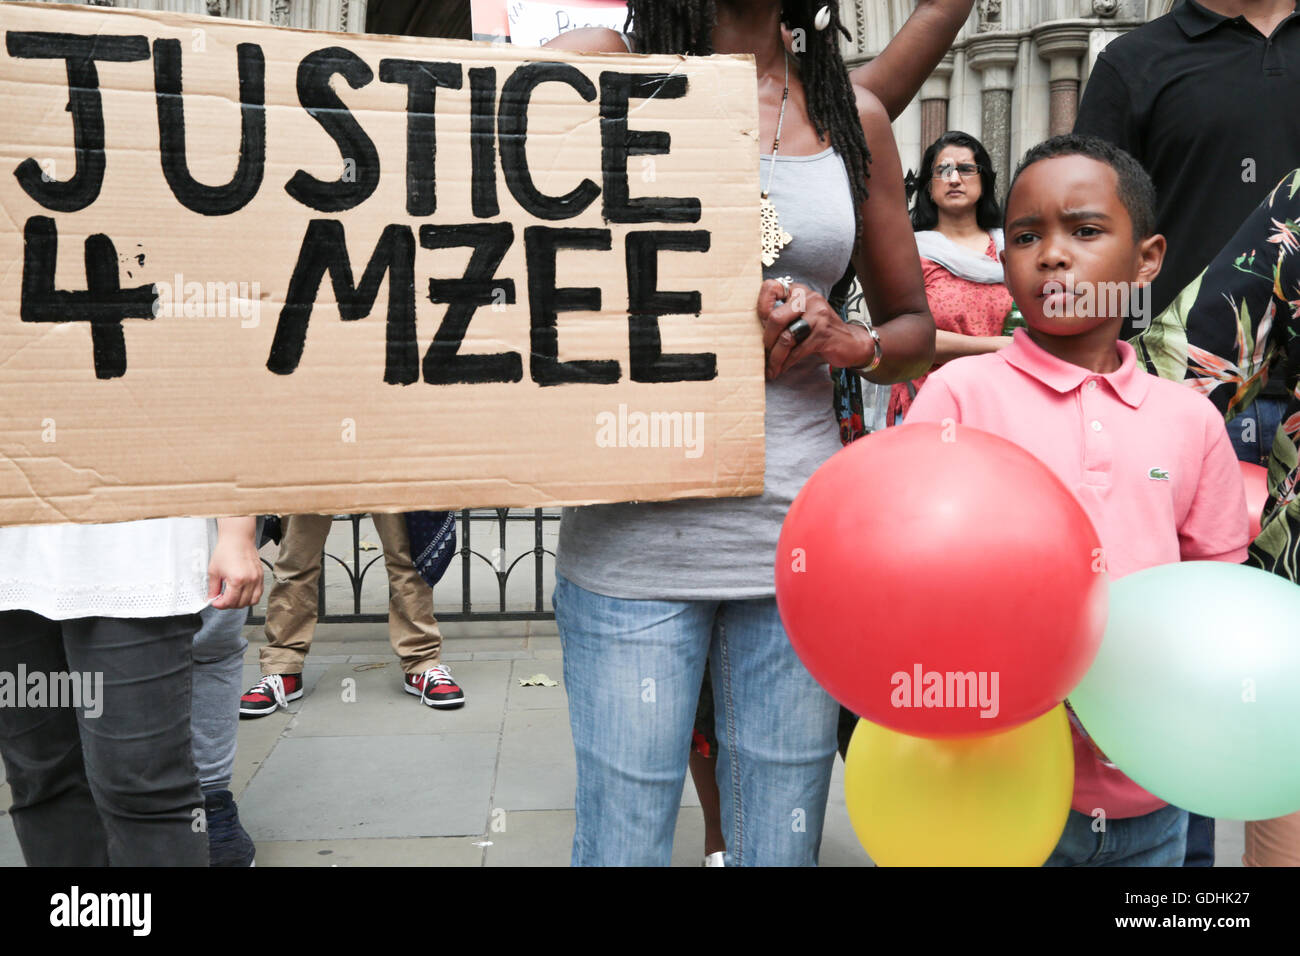 London, UK. 17th July, 2016. People with banners and placards march from oxford circus to the offices of The Independent - Stock Image